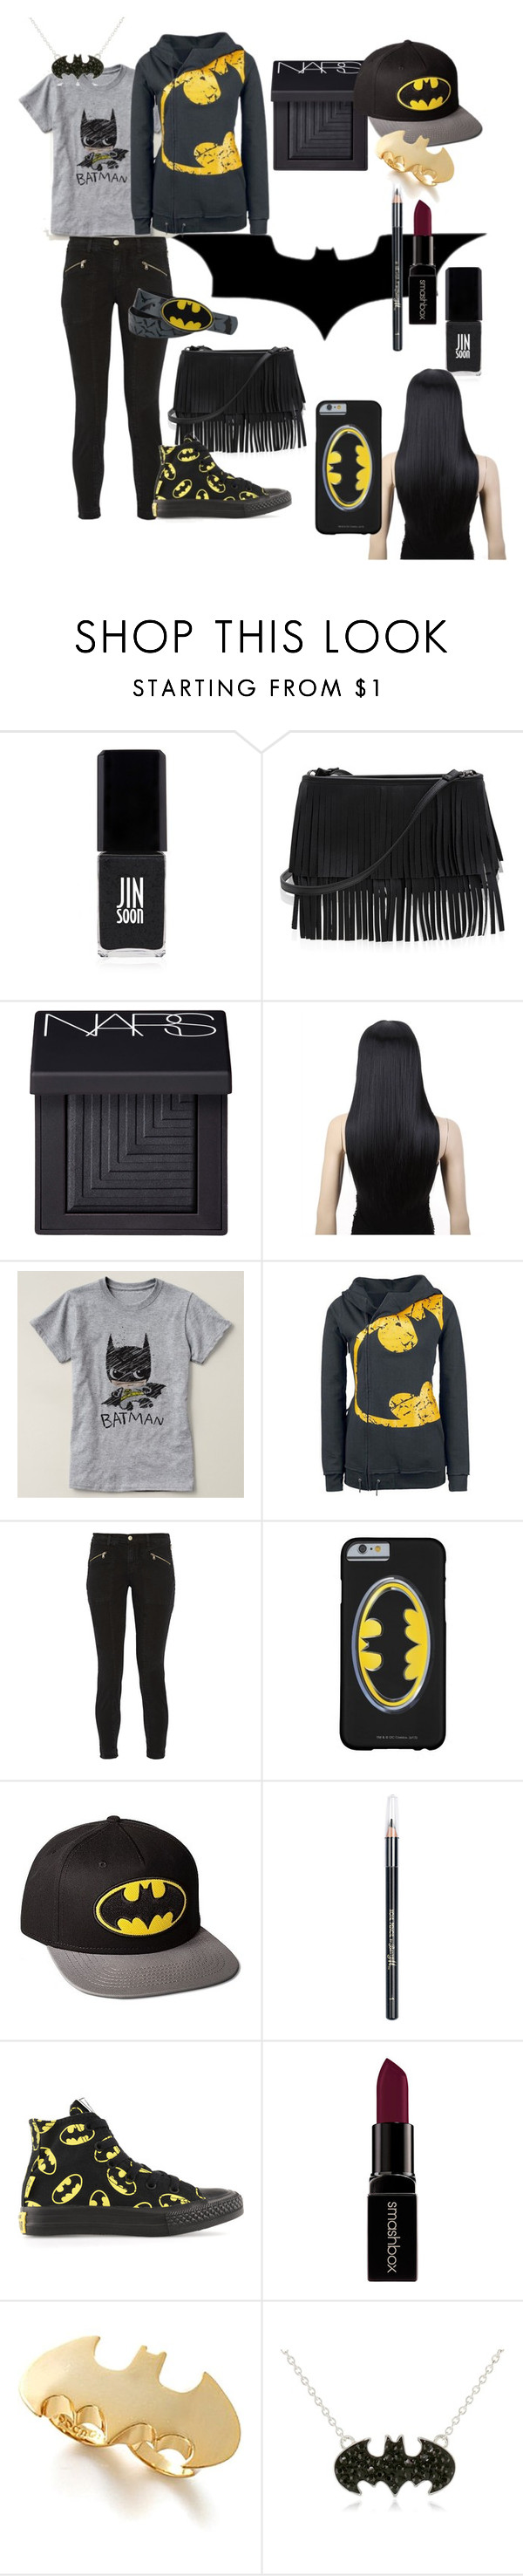 """""""•batman•"""" by abbymccombs ❤ liked on Polyvore featuring JINsoon, White House Black Market, NARS Cosmetics, J Brand, Barry M, Converse, Smashbox and Noir"""